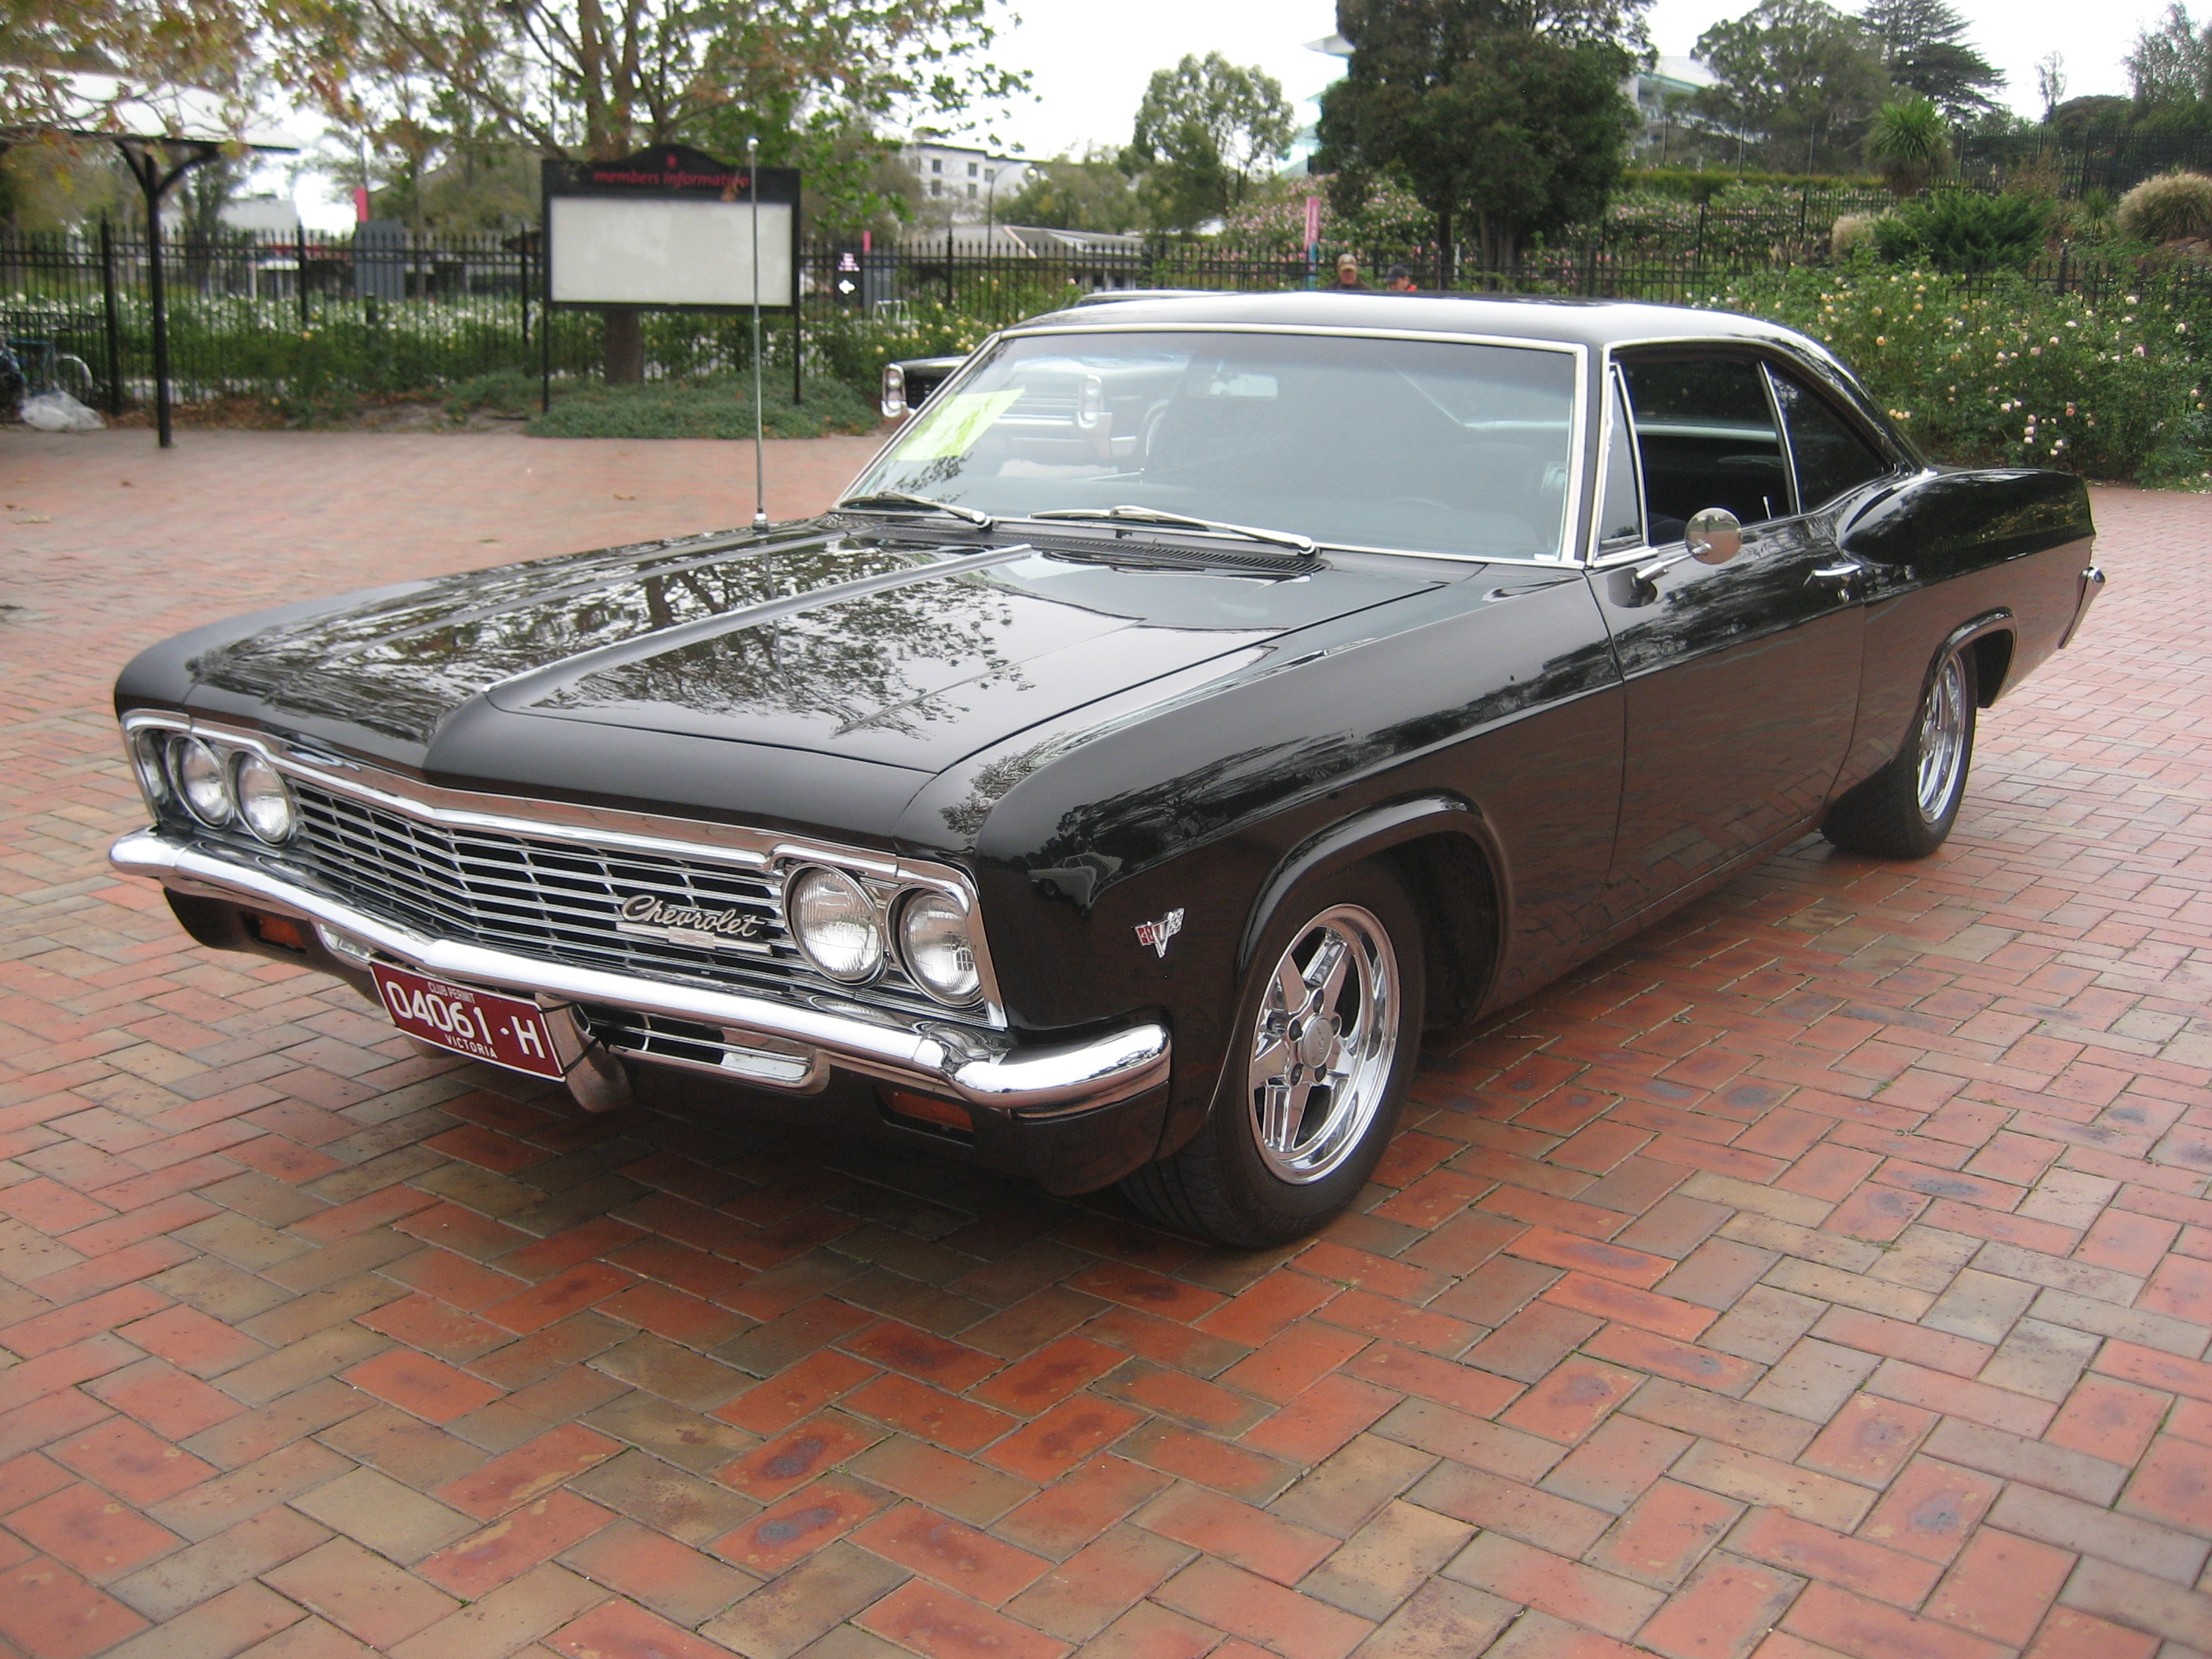 65 Impala Ss For Sale On Ebay also Car Of The Week 1966 Chevrolet Caprice also 1965 CHEVROLET IMPALA SS 409 2 DOOR HARDTOP 65868 together with 1966 Chevrolet Impala additionally Lotdetails. on 1966 chevrolet caprice 396